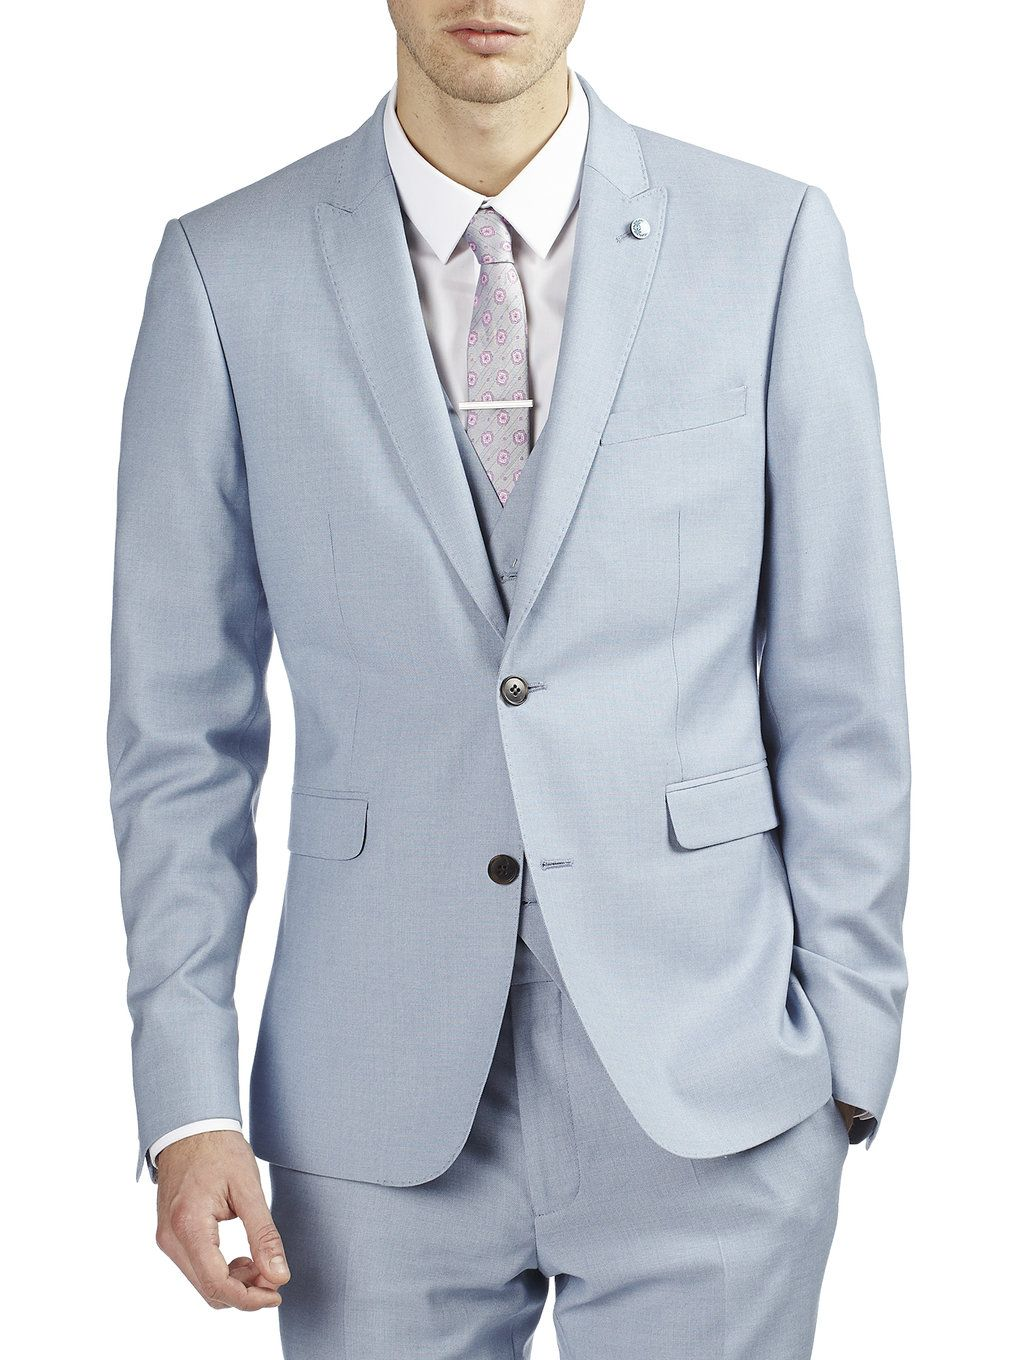 light blue business suit - Google Search | Glenngarry Glenn Ross ...